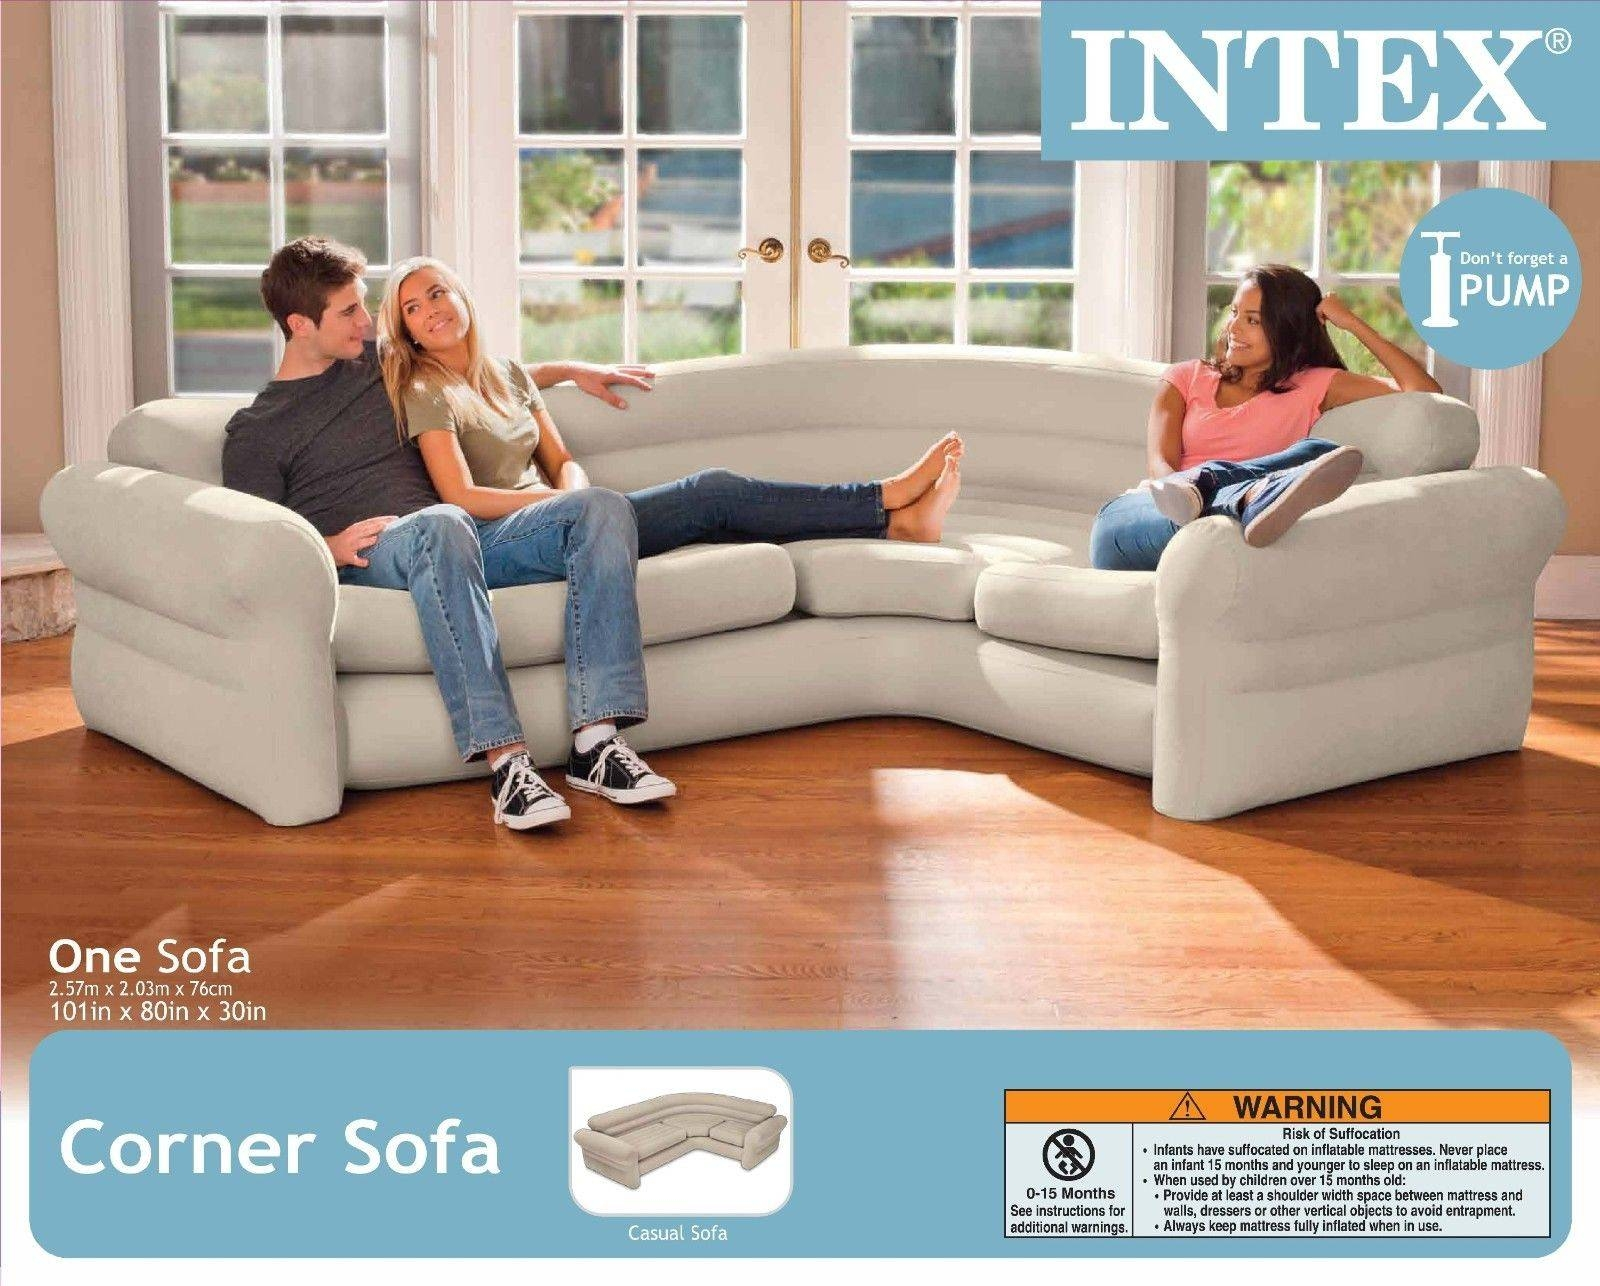 Intex Inflatable Corner Sofa Portable Modern Contemporary Air throughout Intex Air Couches (Image 7 of 15)